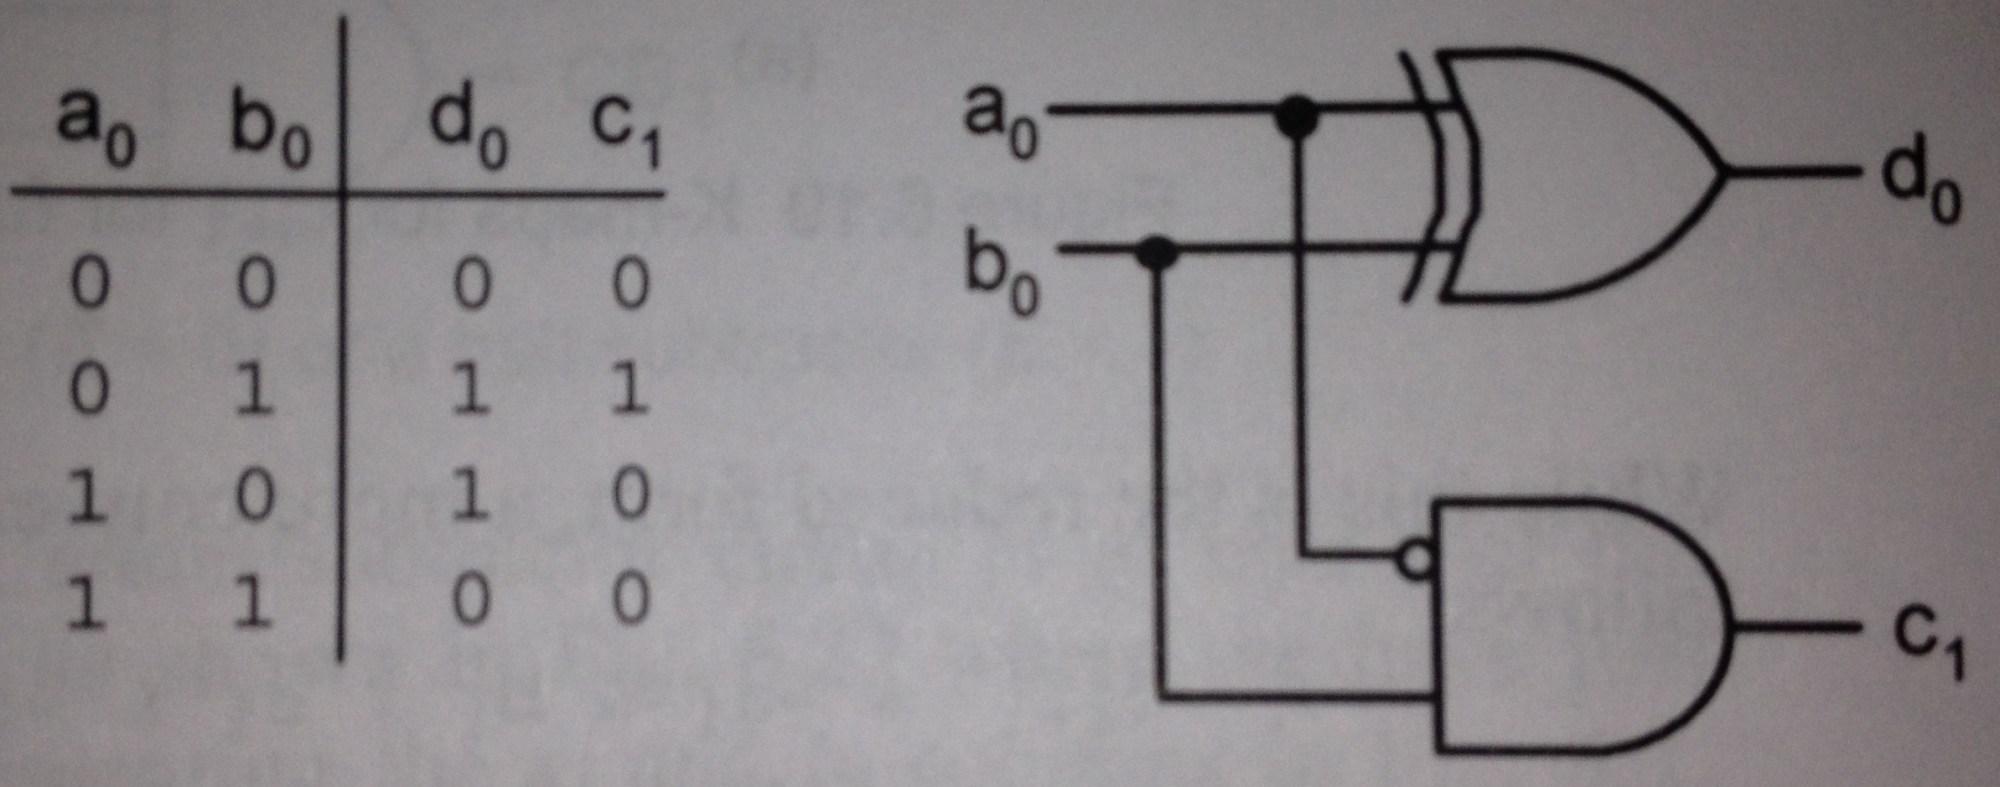 hight resolution of  logic diagram for a half subtractor is shown below fig 6 17